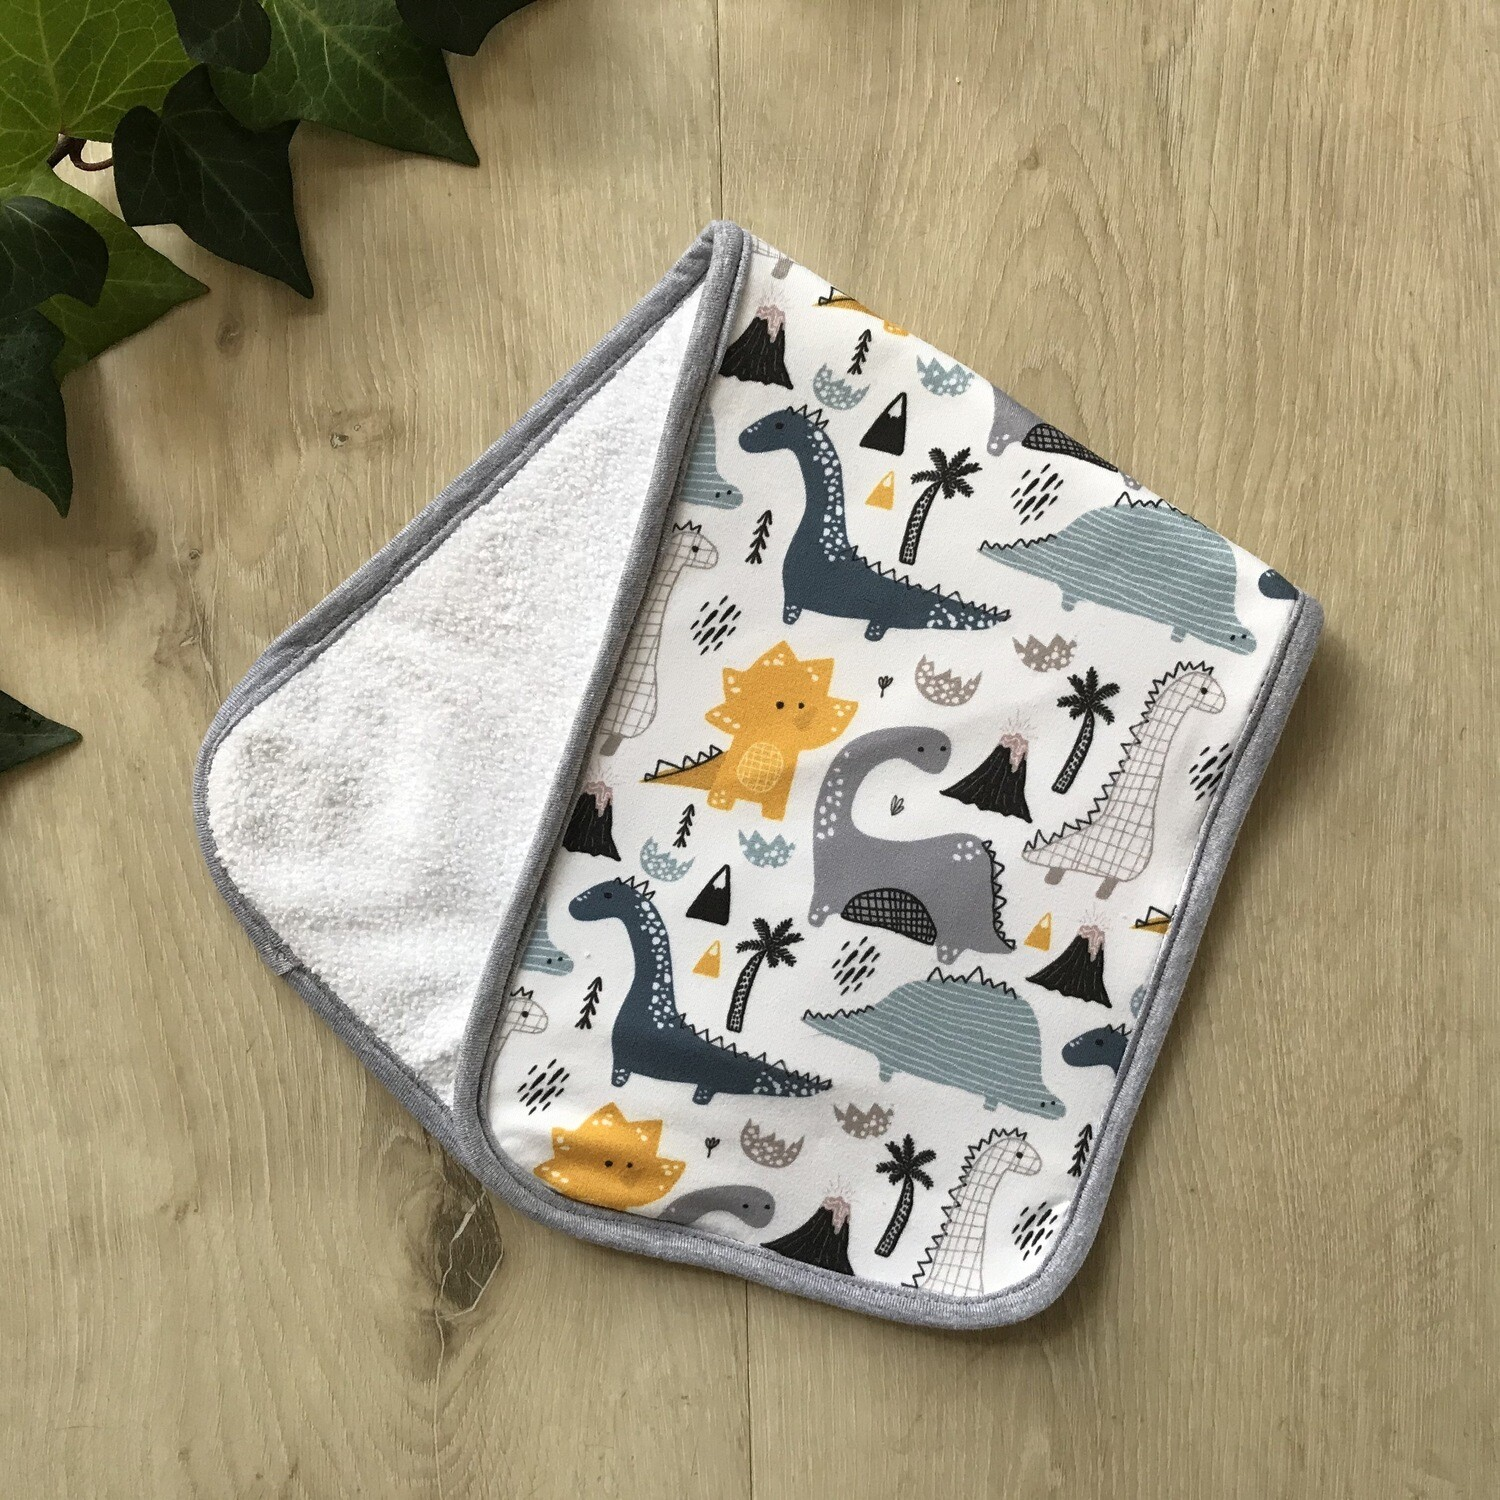 Dino burp cloth